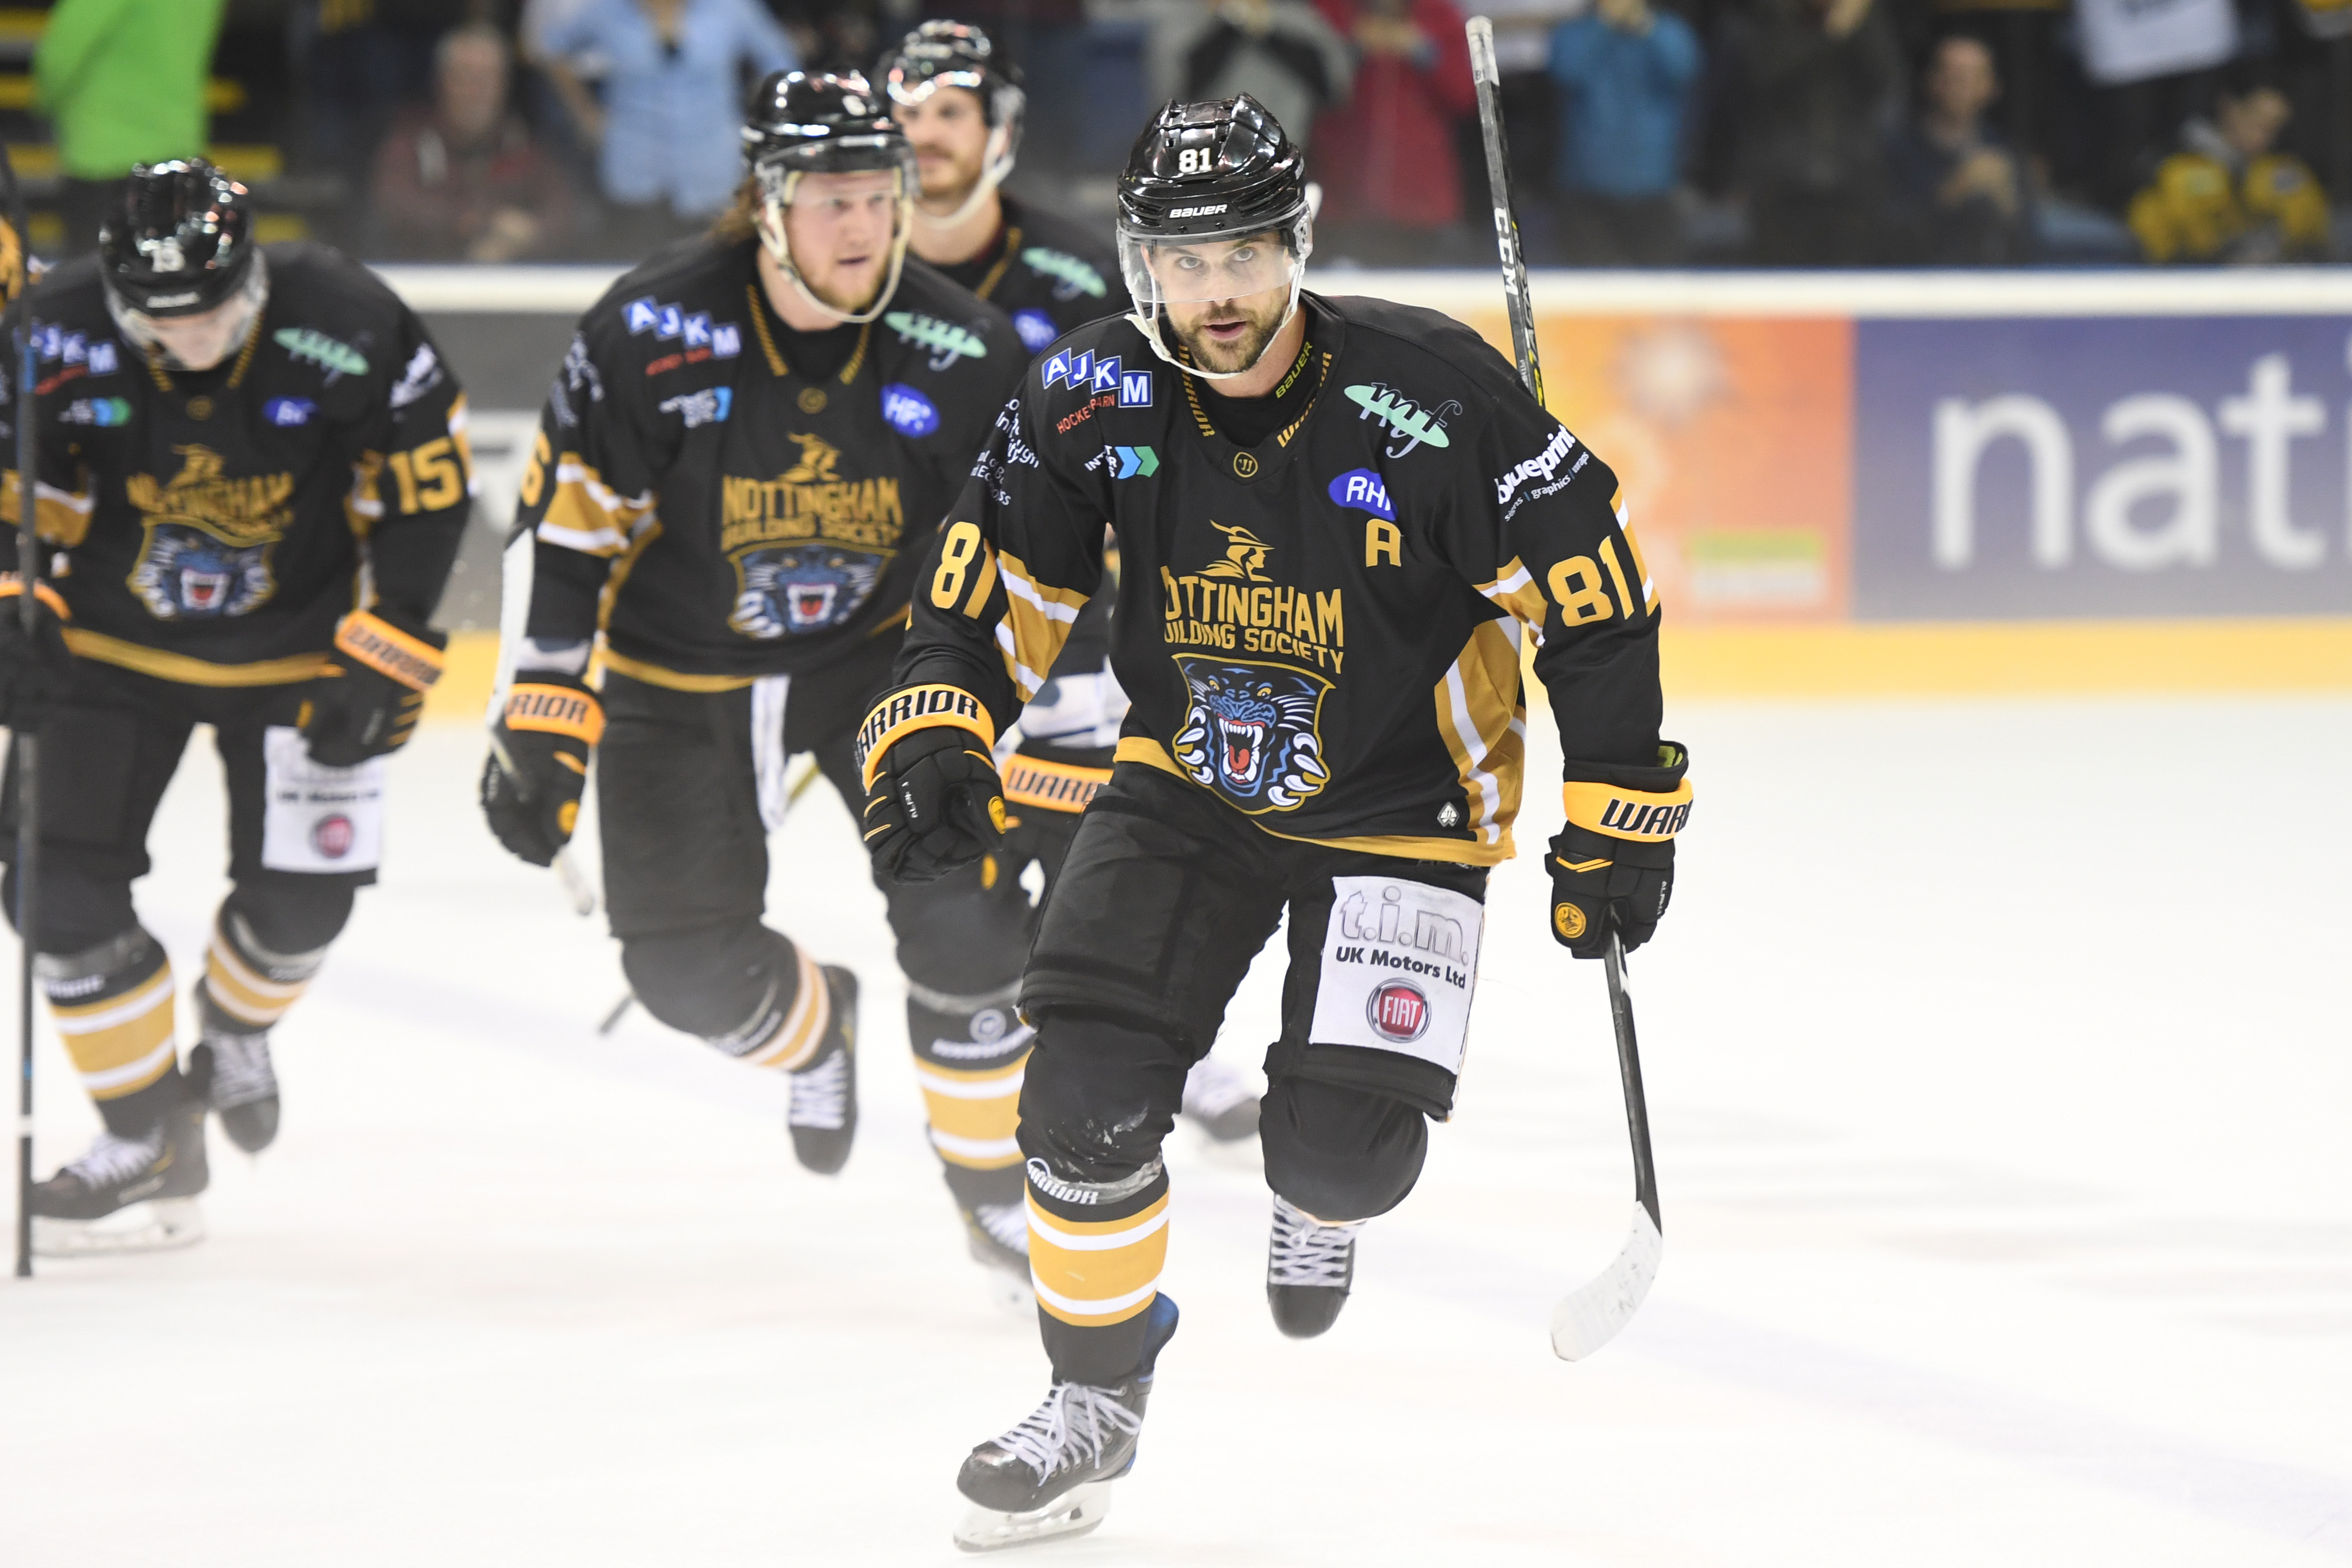 Pither on Panthers Radio - 22/01/19 Top Image